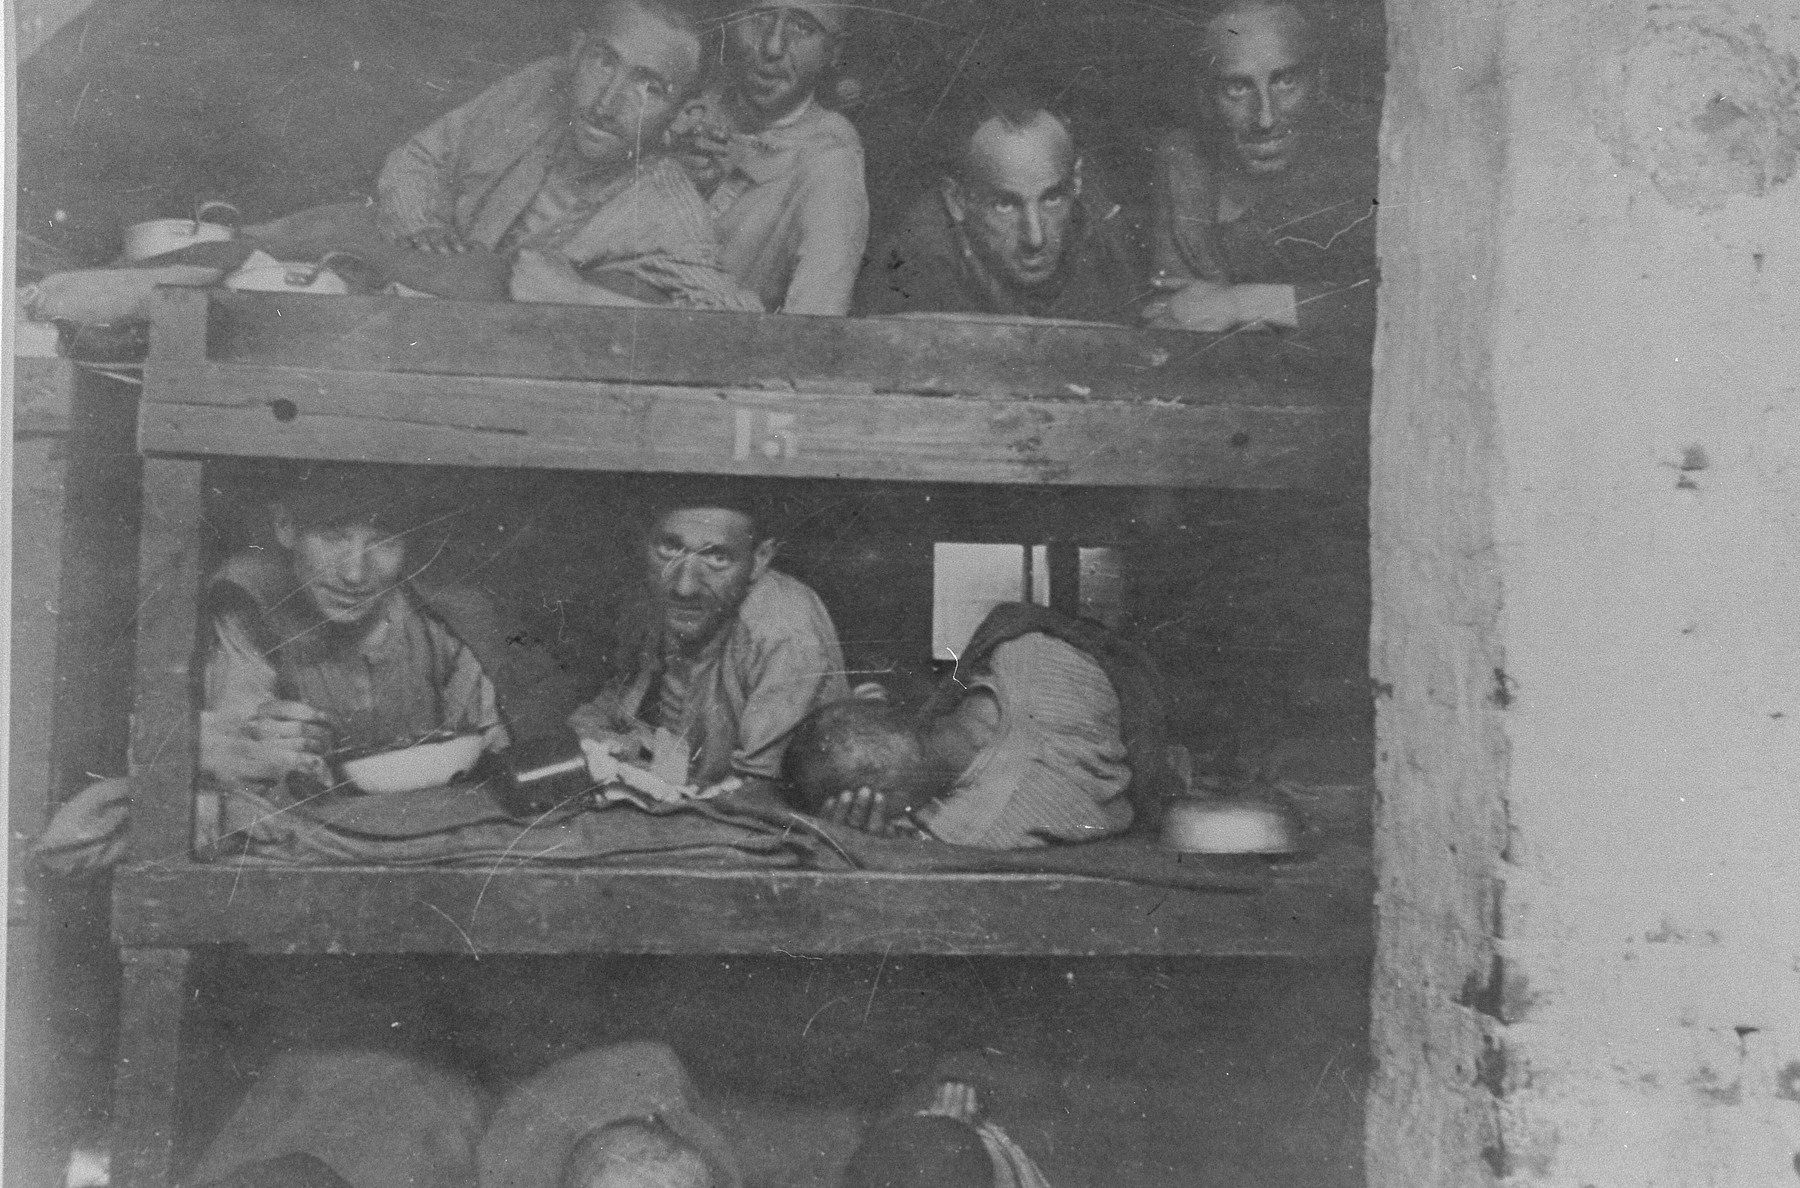 Survivors in Buchenwald who are still too weak to leave lie in their bunks.